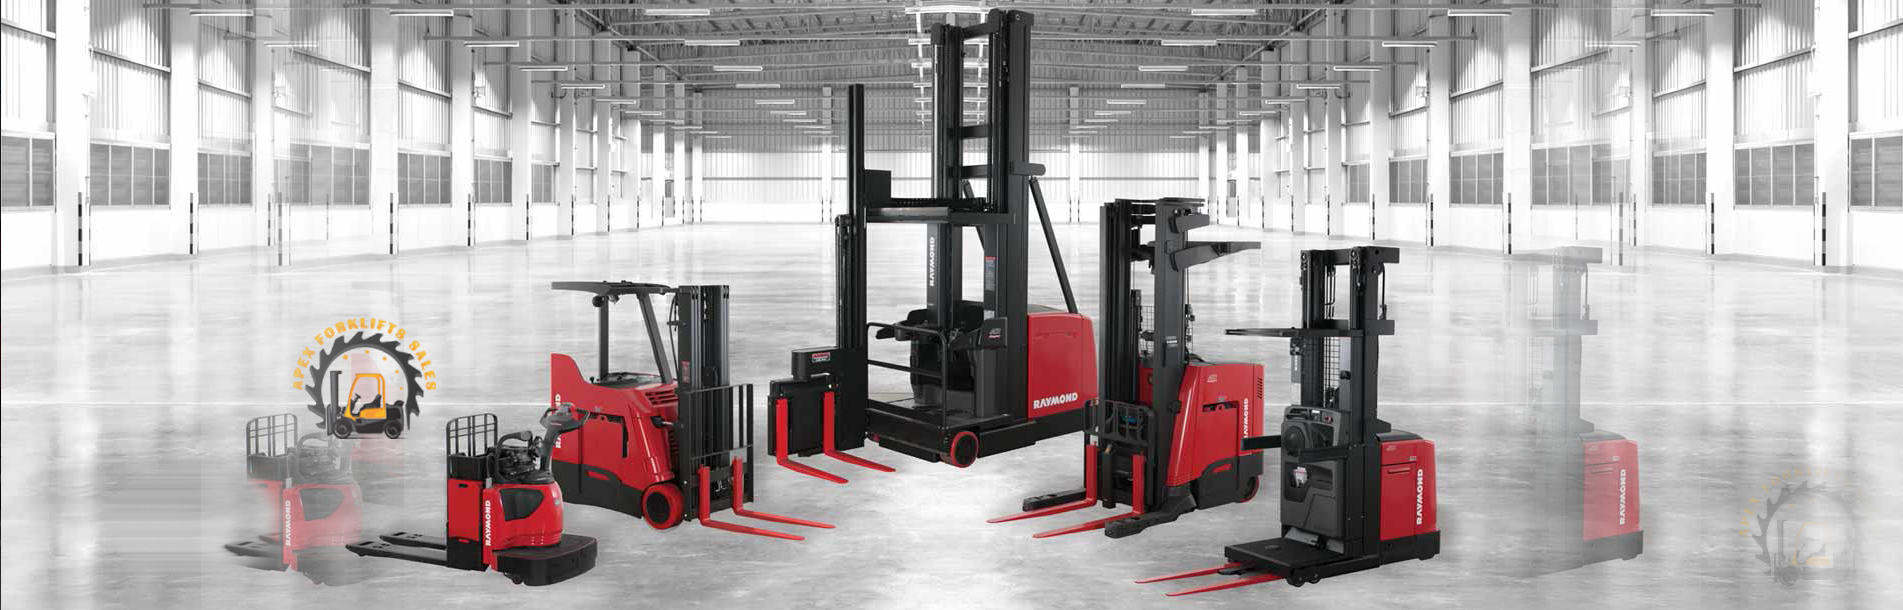 Apex Forklift | Used Forklift for Sale and Repairs in Miami